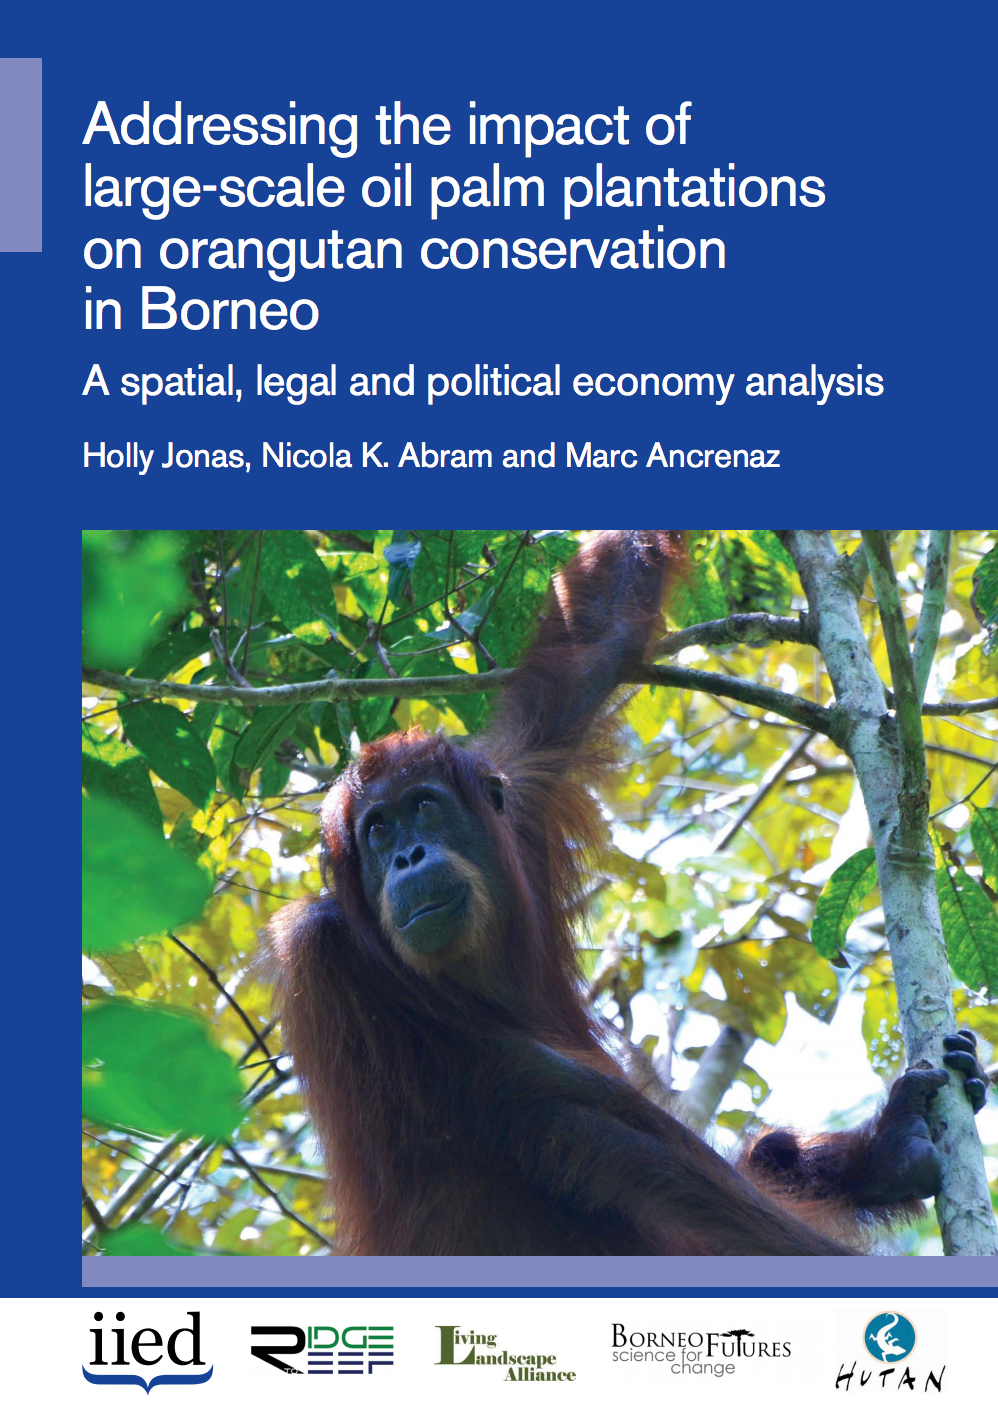 Addressing the impact of large-scale oil palm plantations on orangutan conservation in Borneo: A spatial, legal and political economy analysis cover image